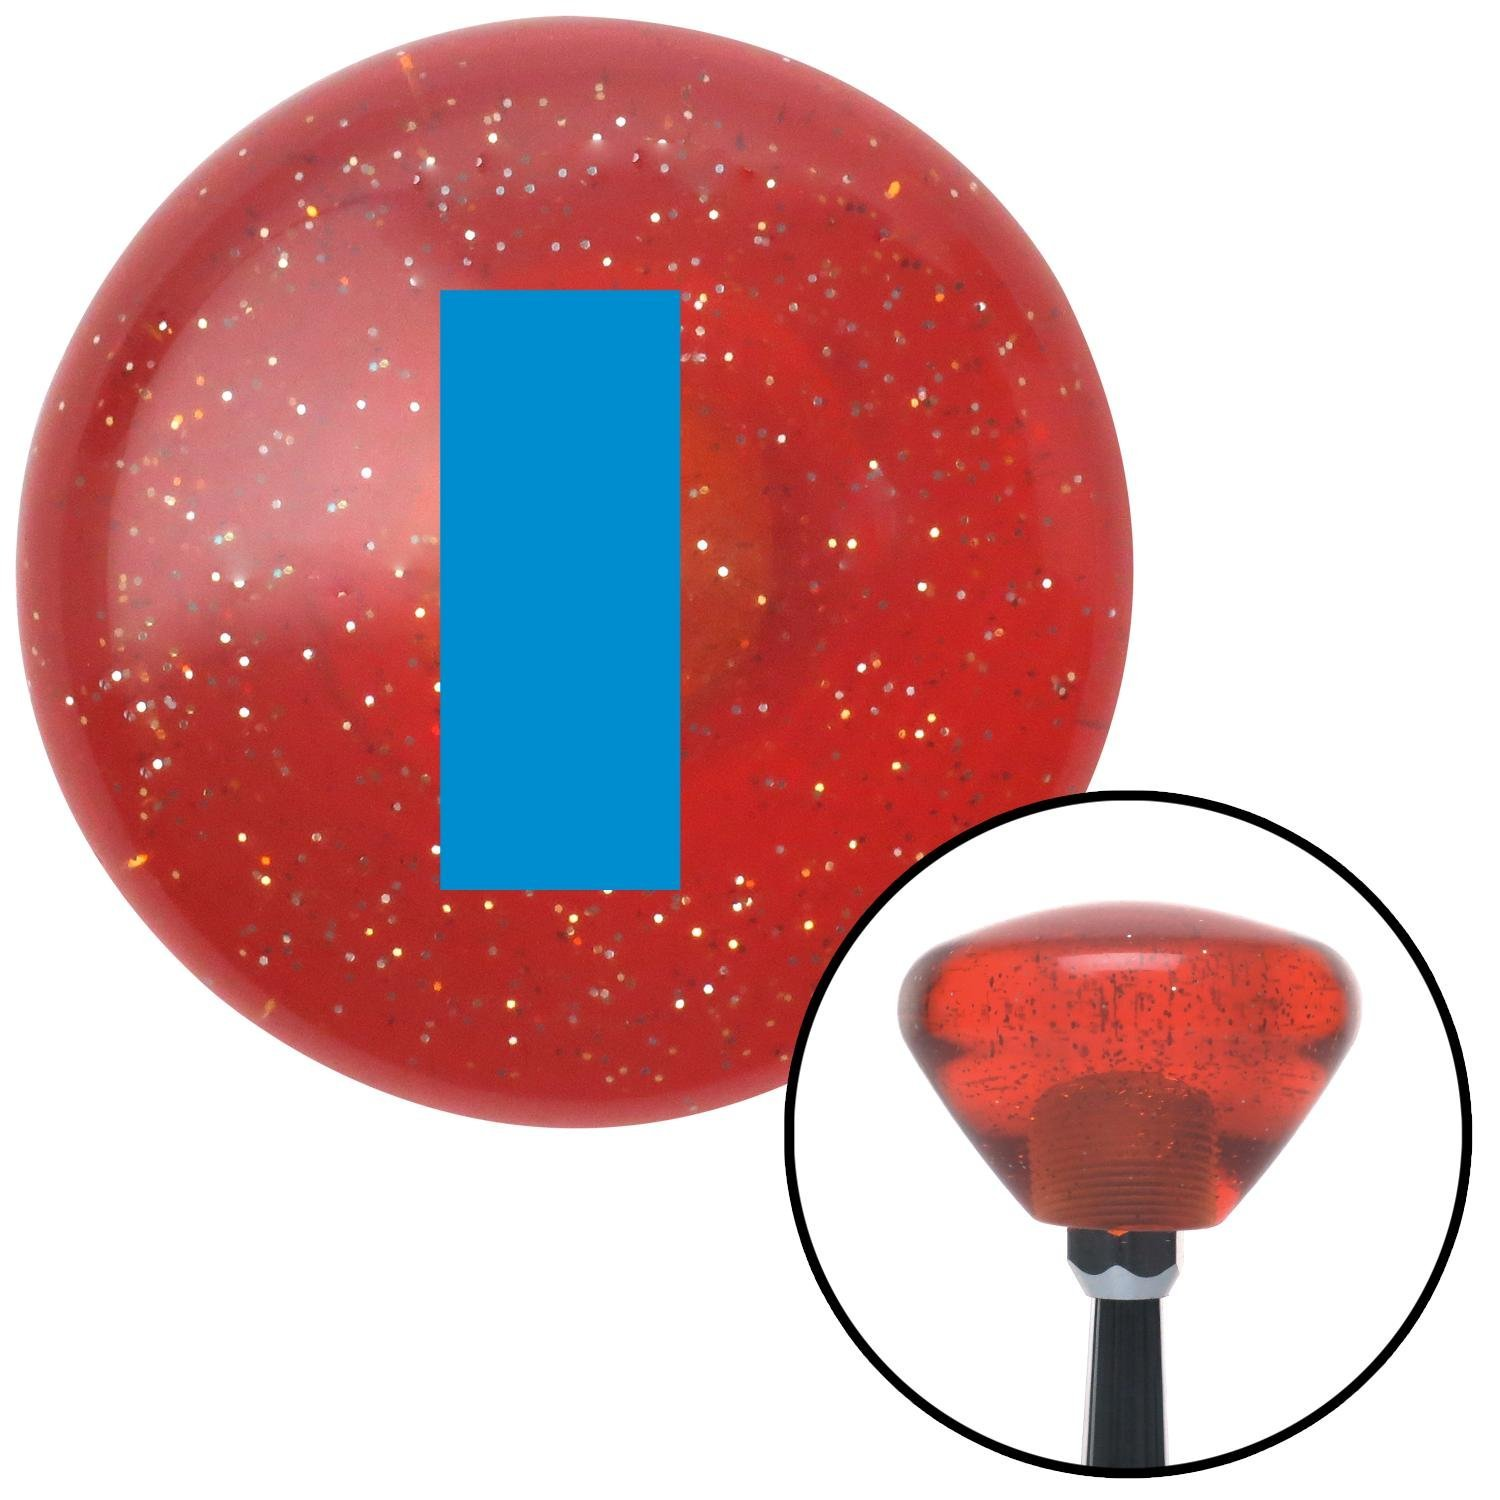 American Shifter 178423 Orange Retro Metal Flake Shift Knob with M16 x 1.5 Insert Blue Officer 01-2n Lt. and 1d Lt.